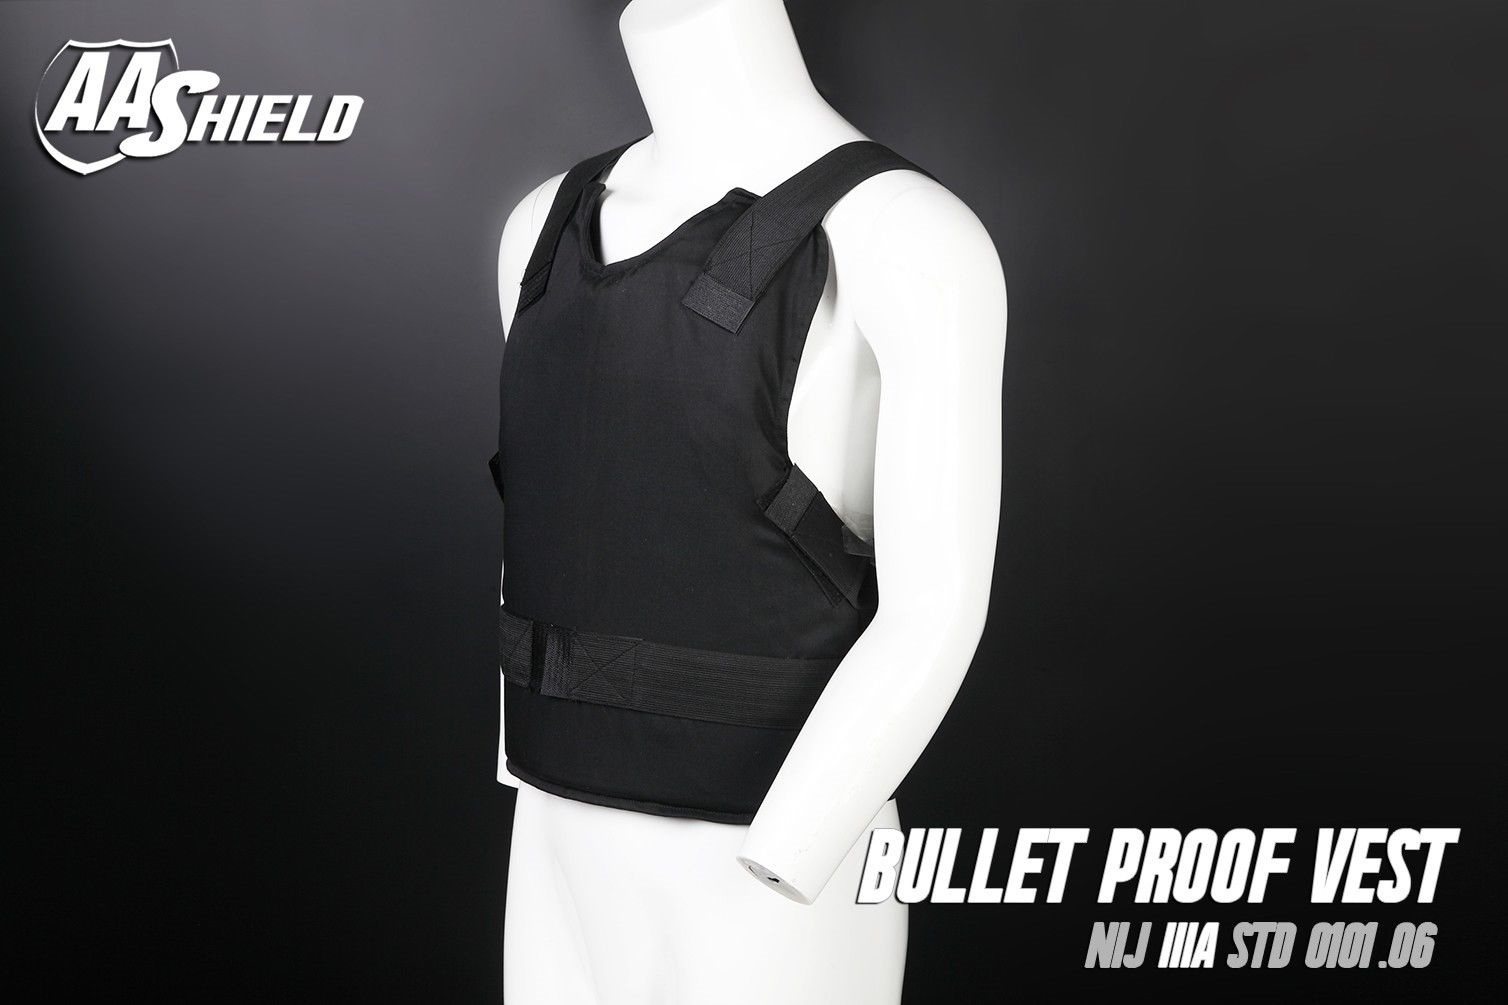 aa shield bullet proof vest comfort concealable body armor lvl aa shield bullet proof vest body armor vip suit comfortable armor aramid core carrier black xxl